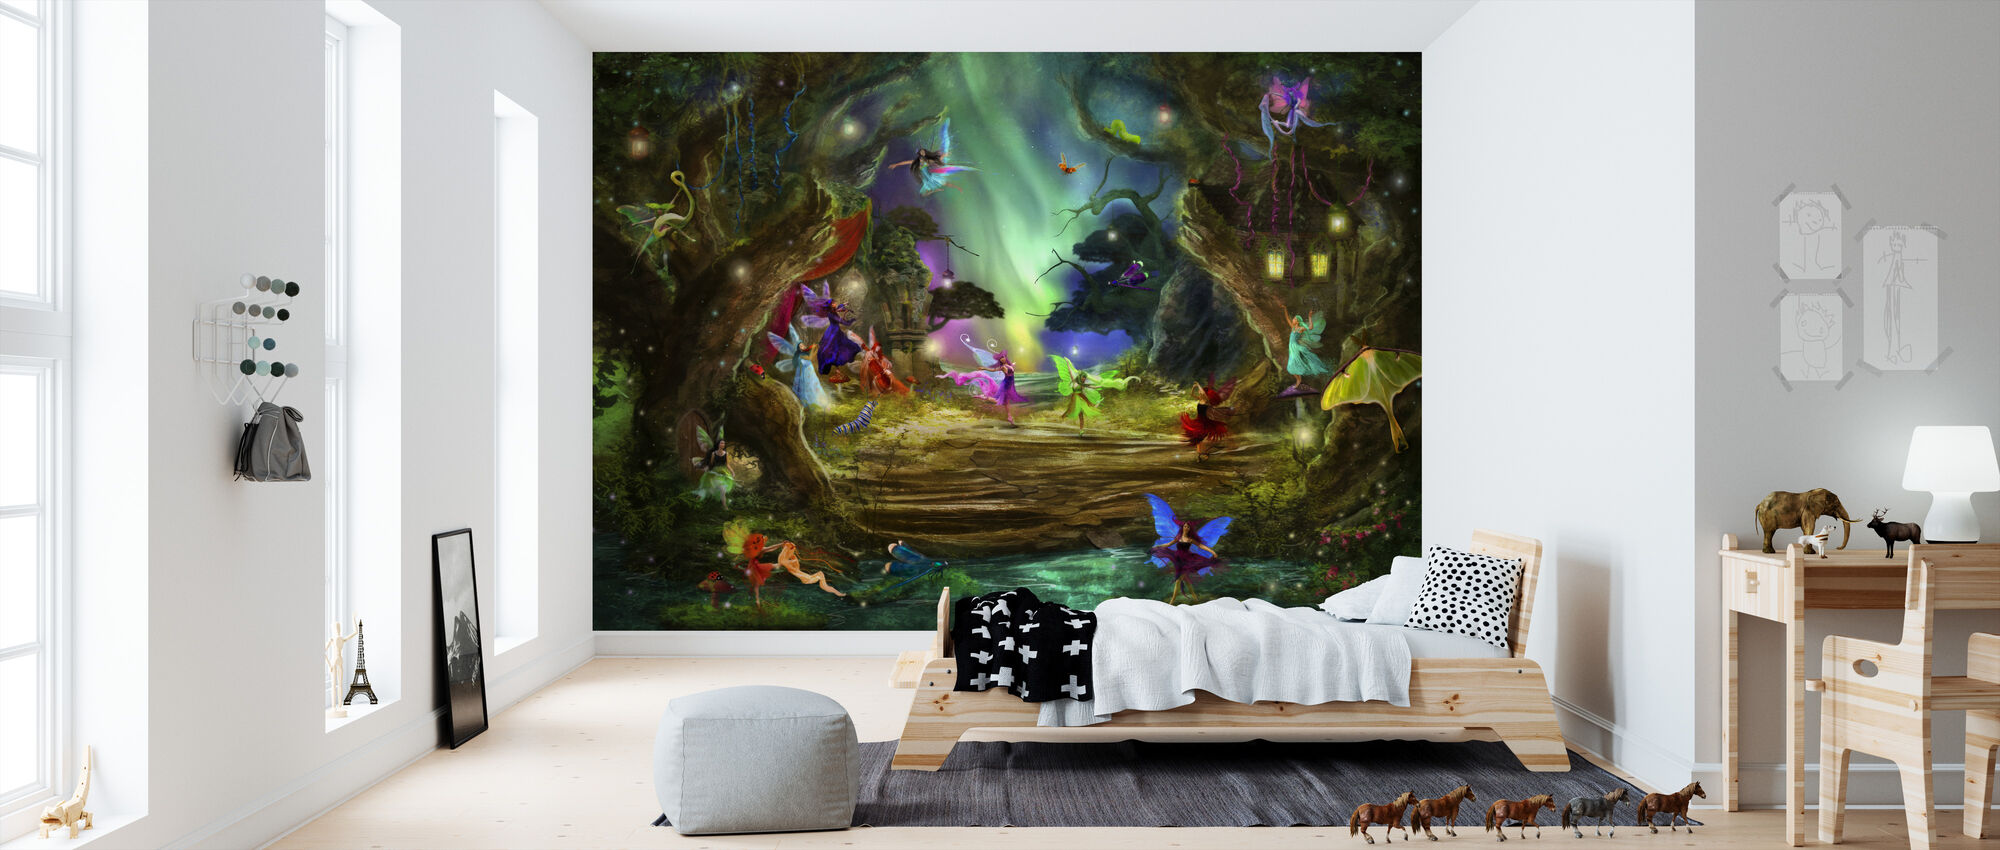 The Dancing Auroras - Wallpaper - Kids Room